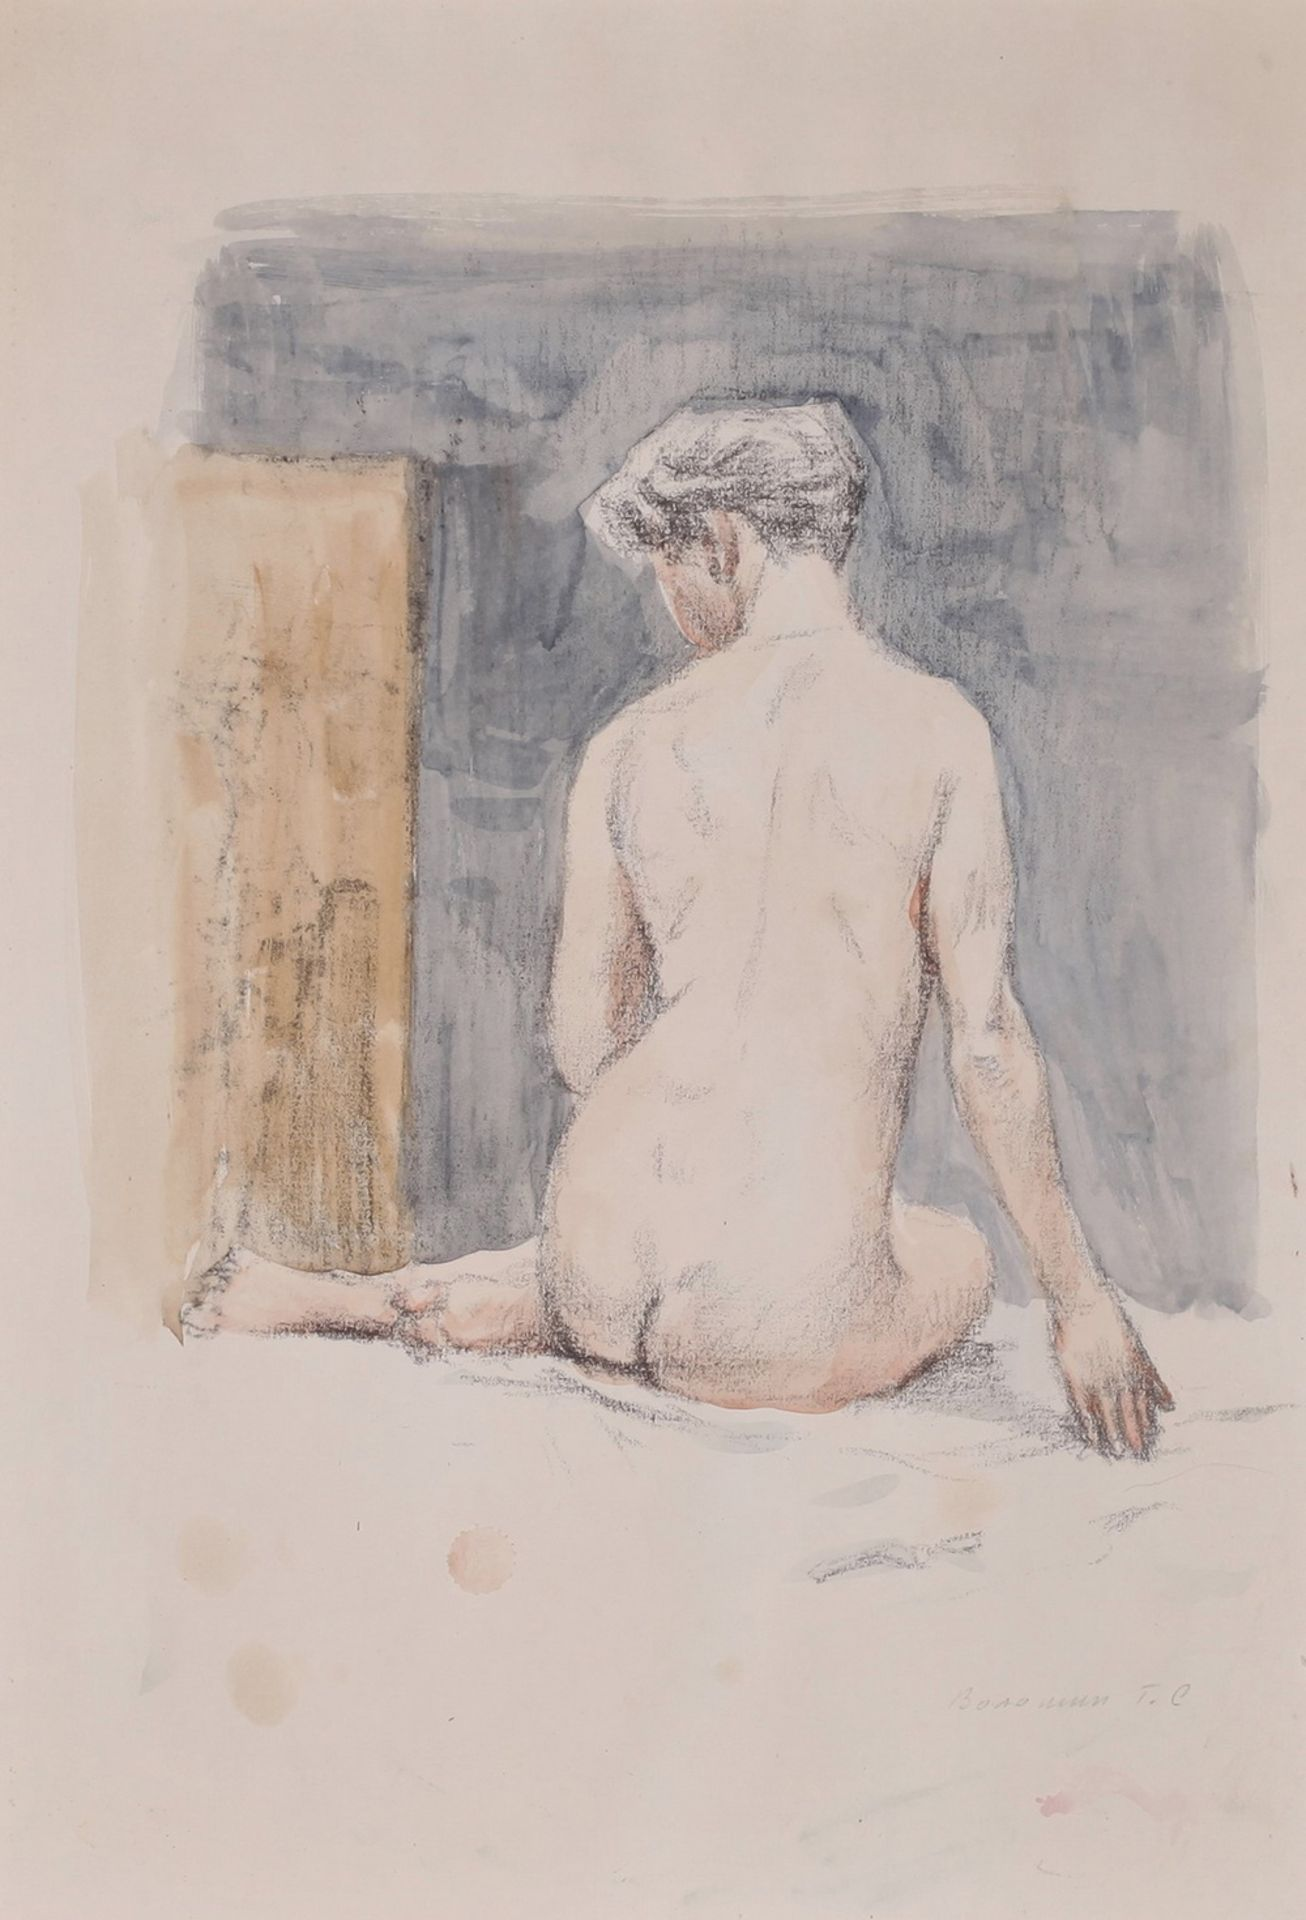 [Russian art]. Voloshin, G.S. Sitting nude. Signed and framed. 1950. Paper, pencil, watercolor. 39,